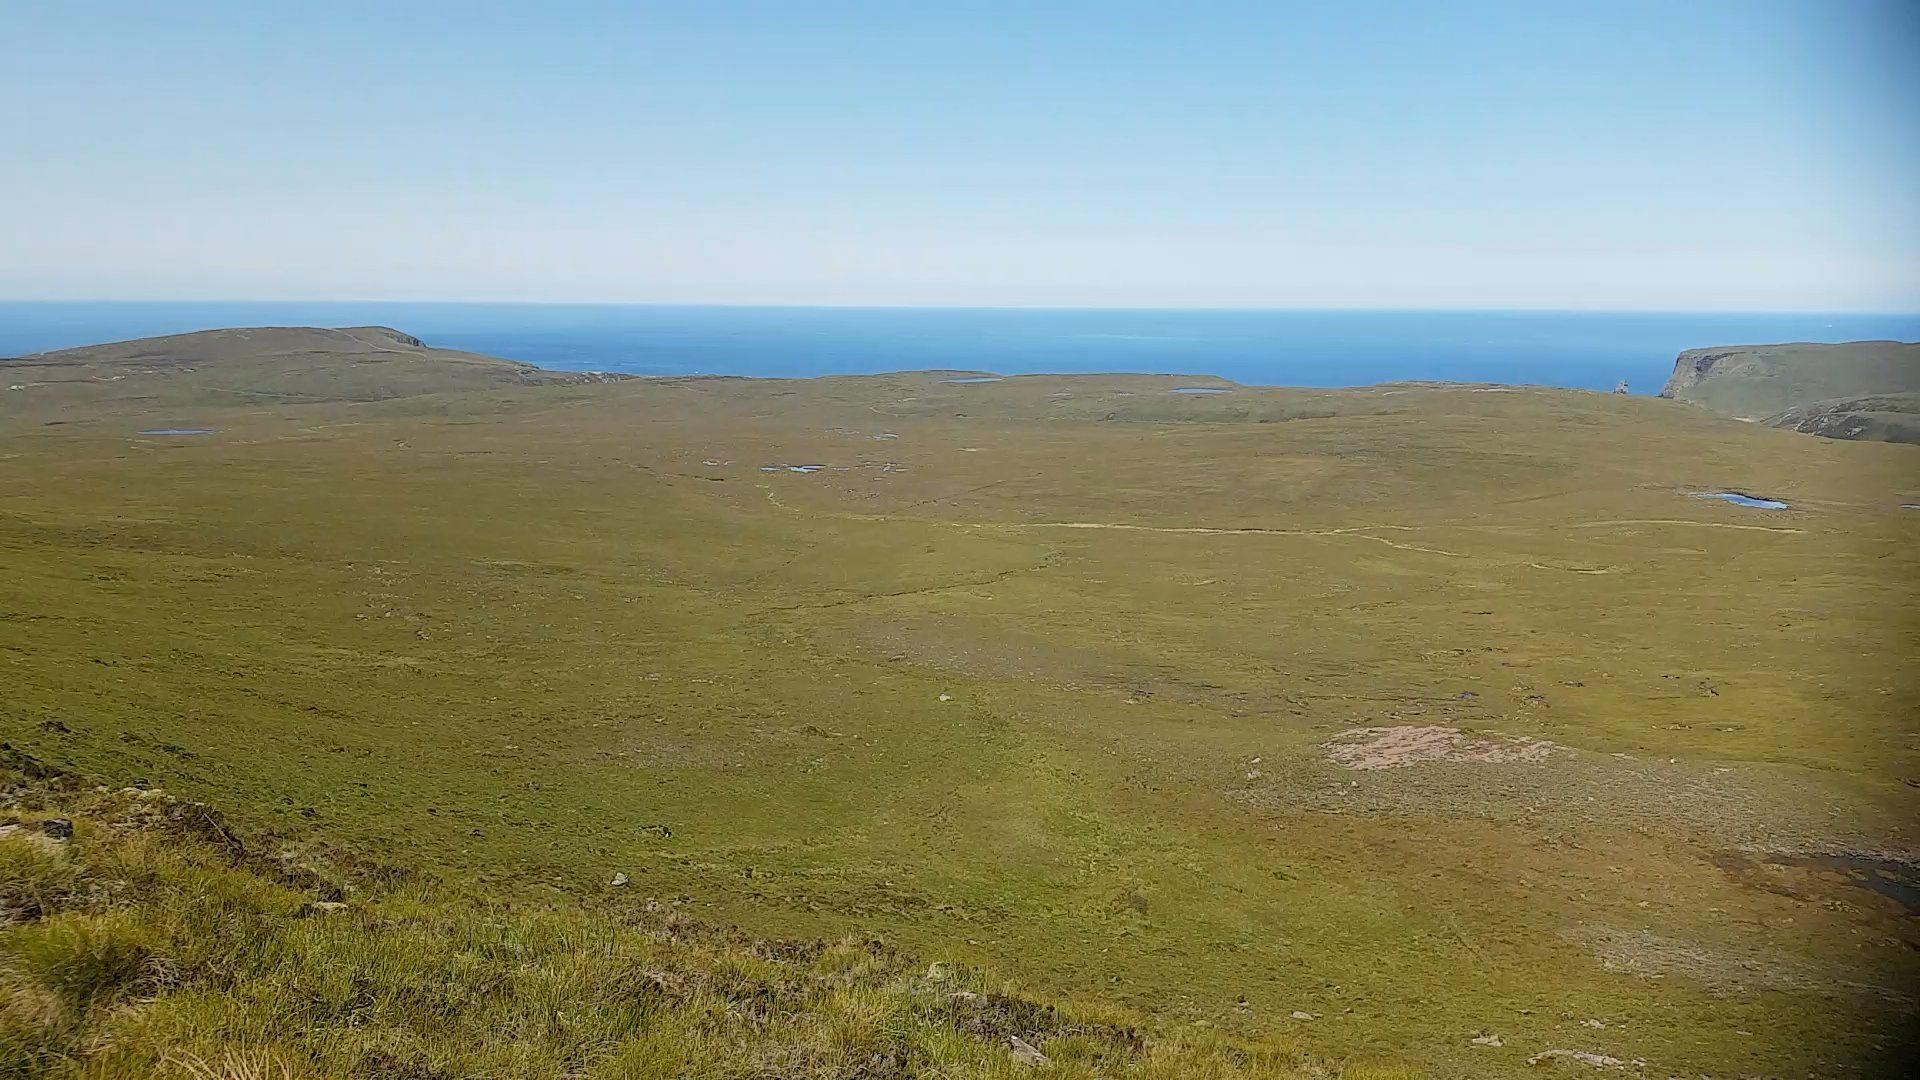 Looking north, towards Cape Wrath and Kervaig and across the rock, peat and bogs of the Parph